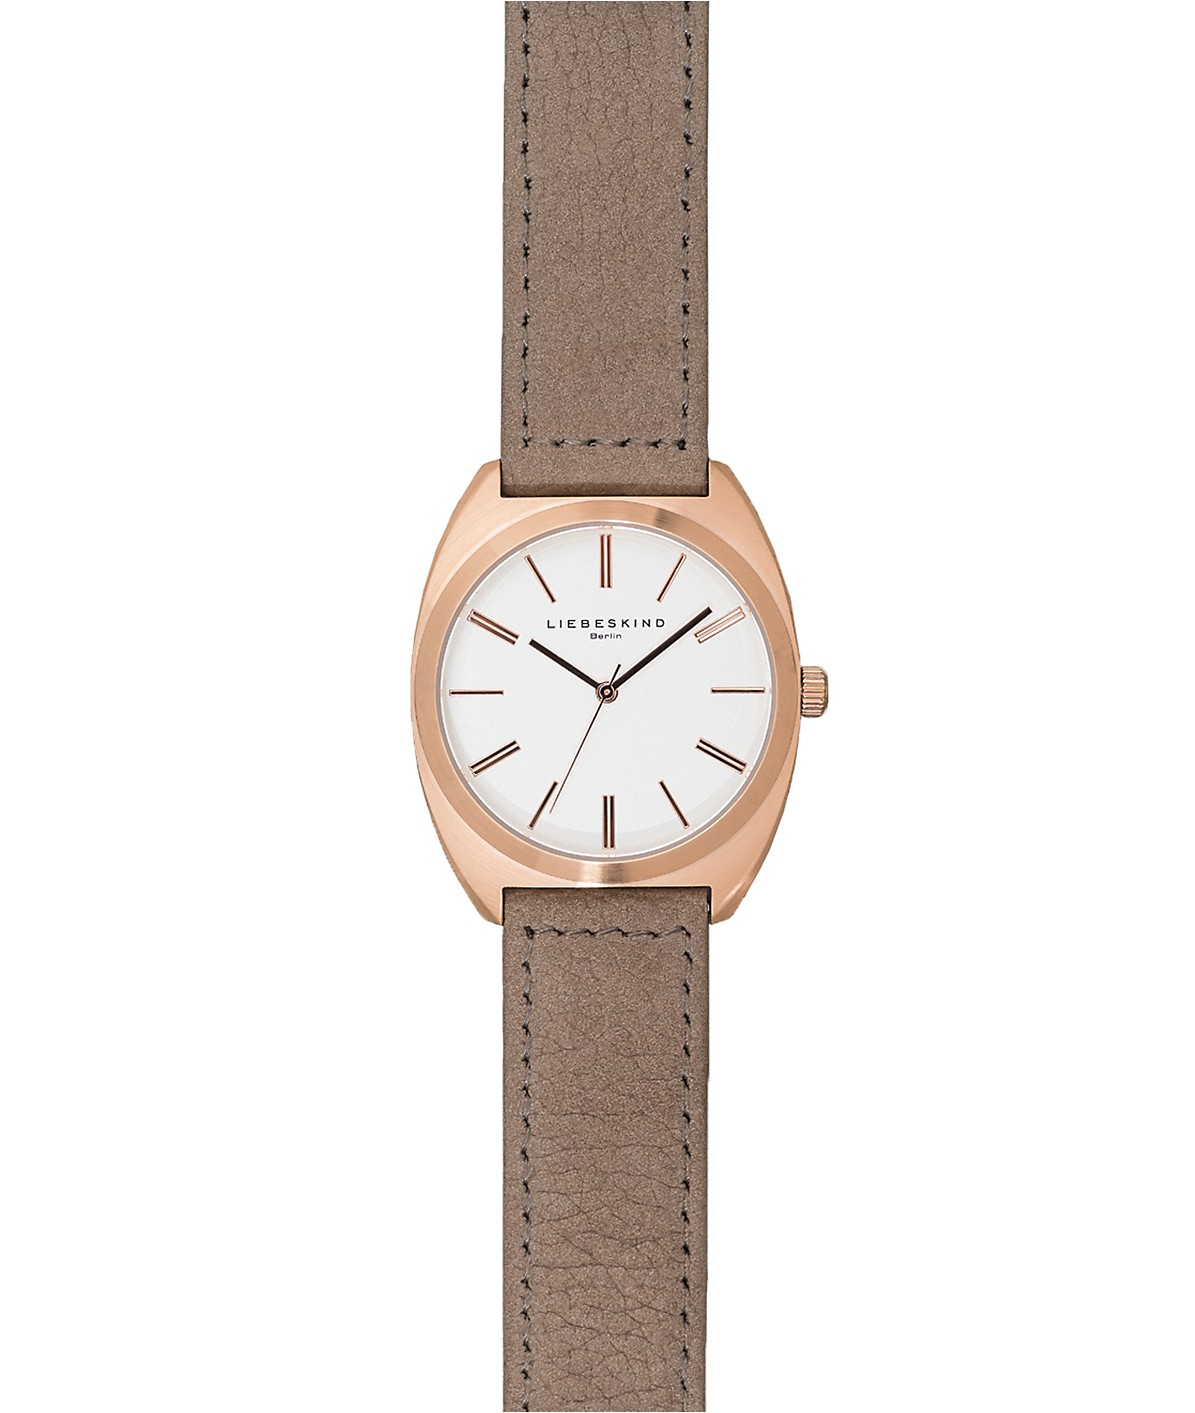 Nubuck Large LT-0016-LQ watch from liebeskind